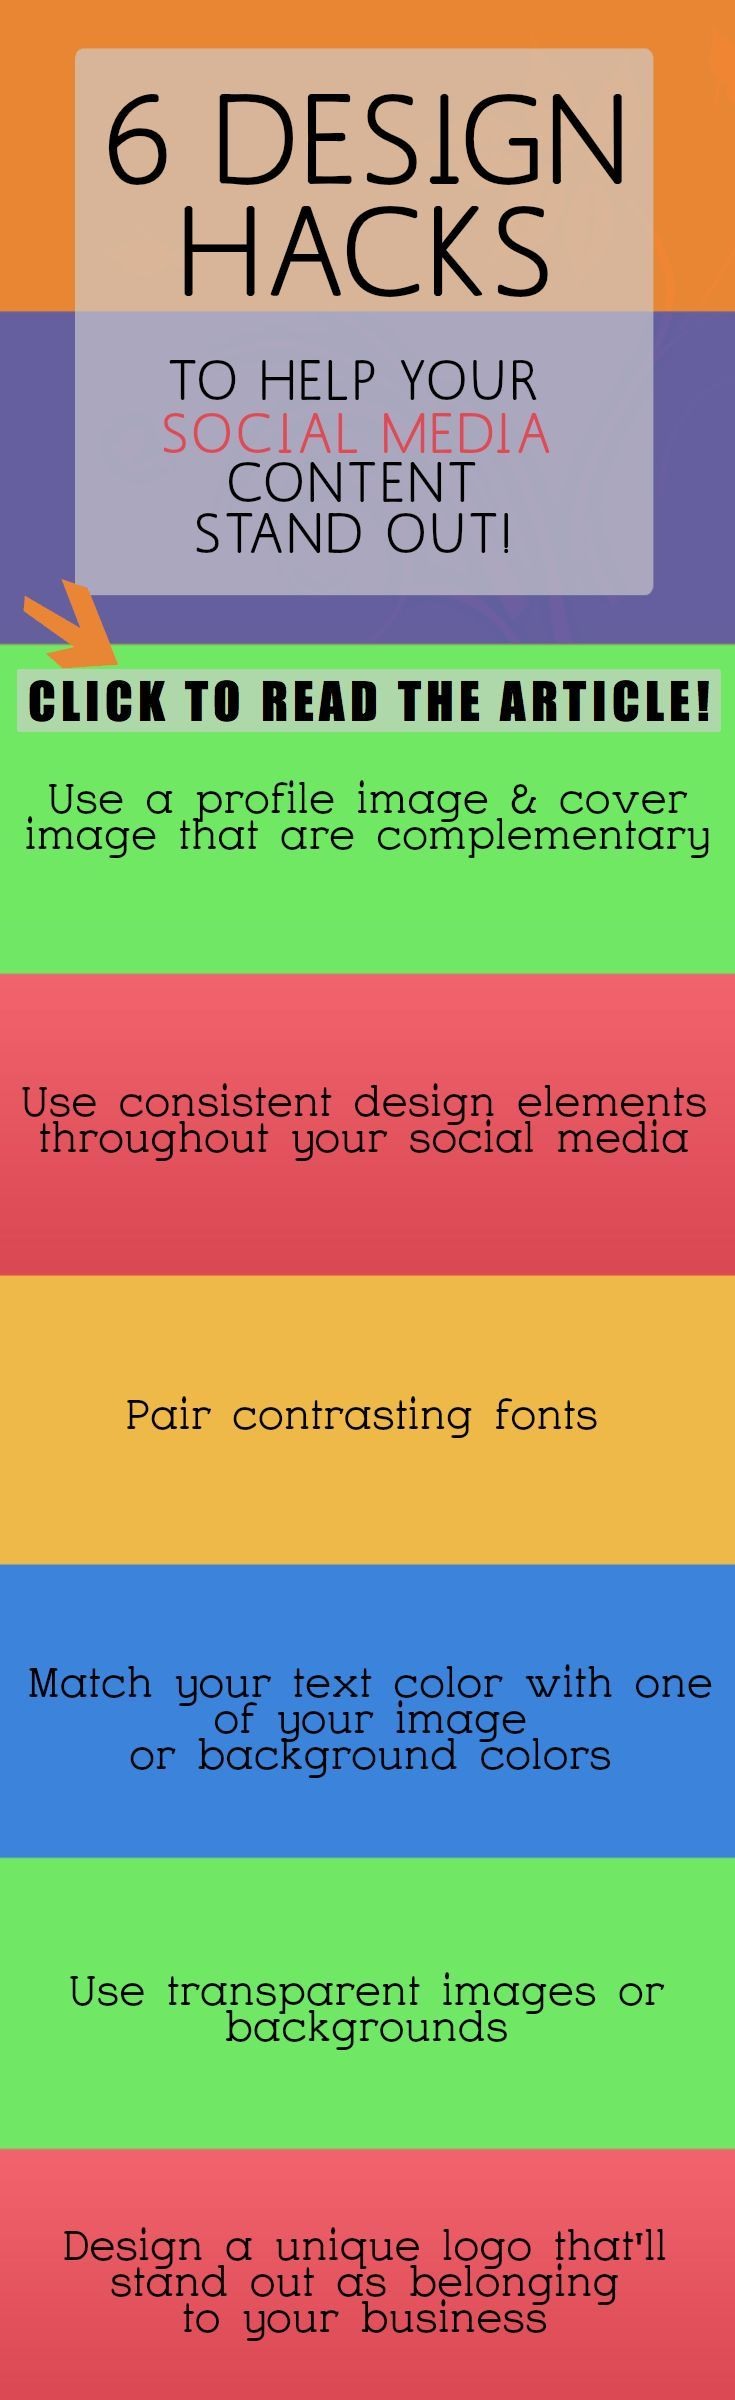 Social Media Design: 6 Design Hacks to help your social content stand out